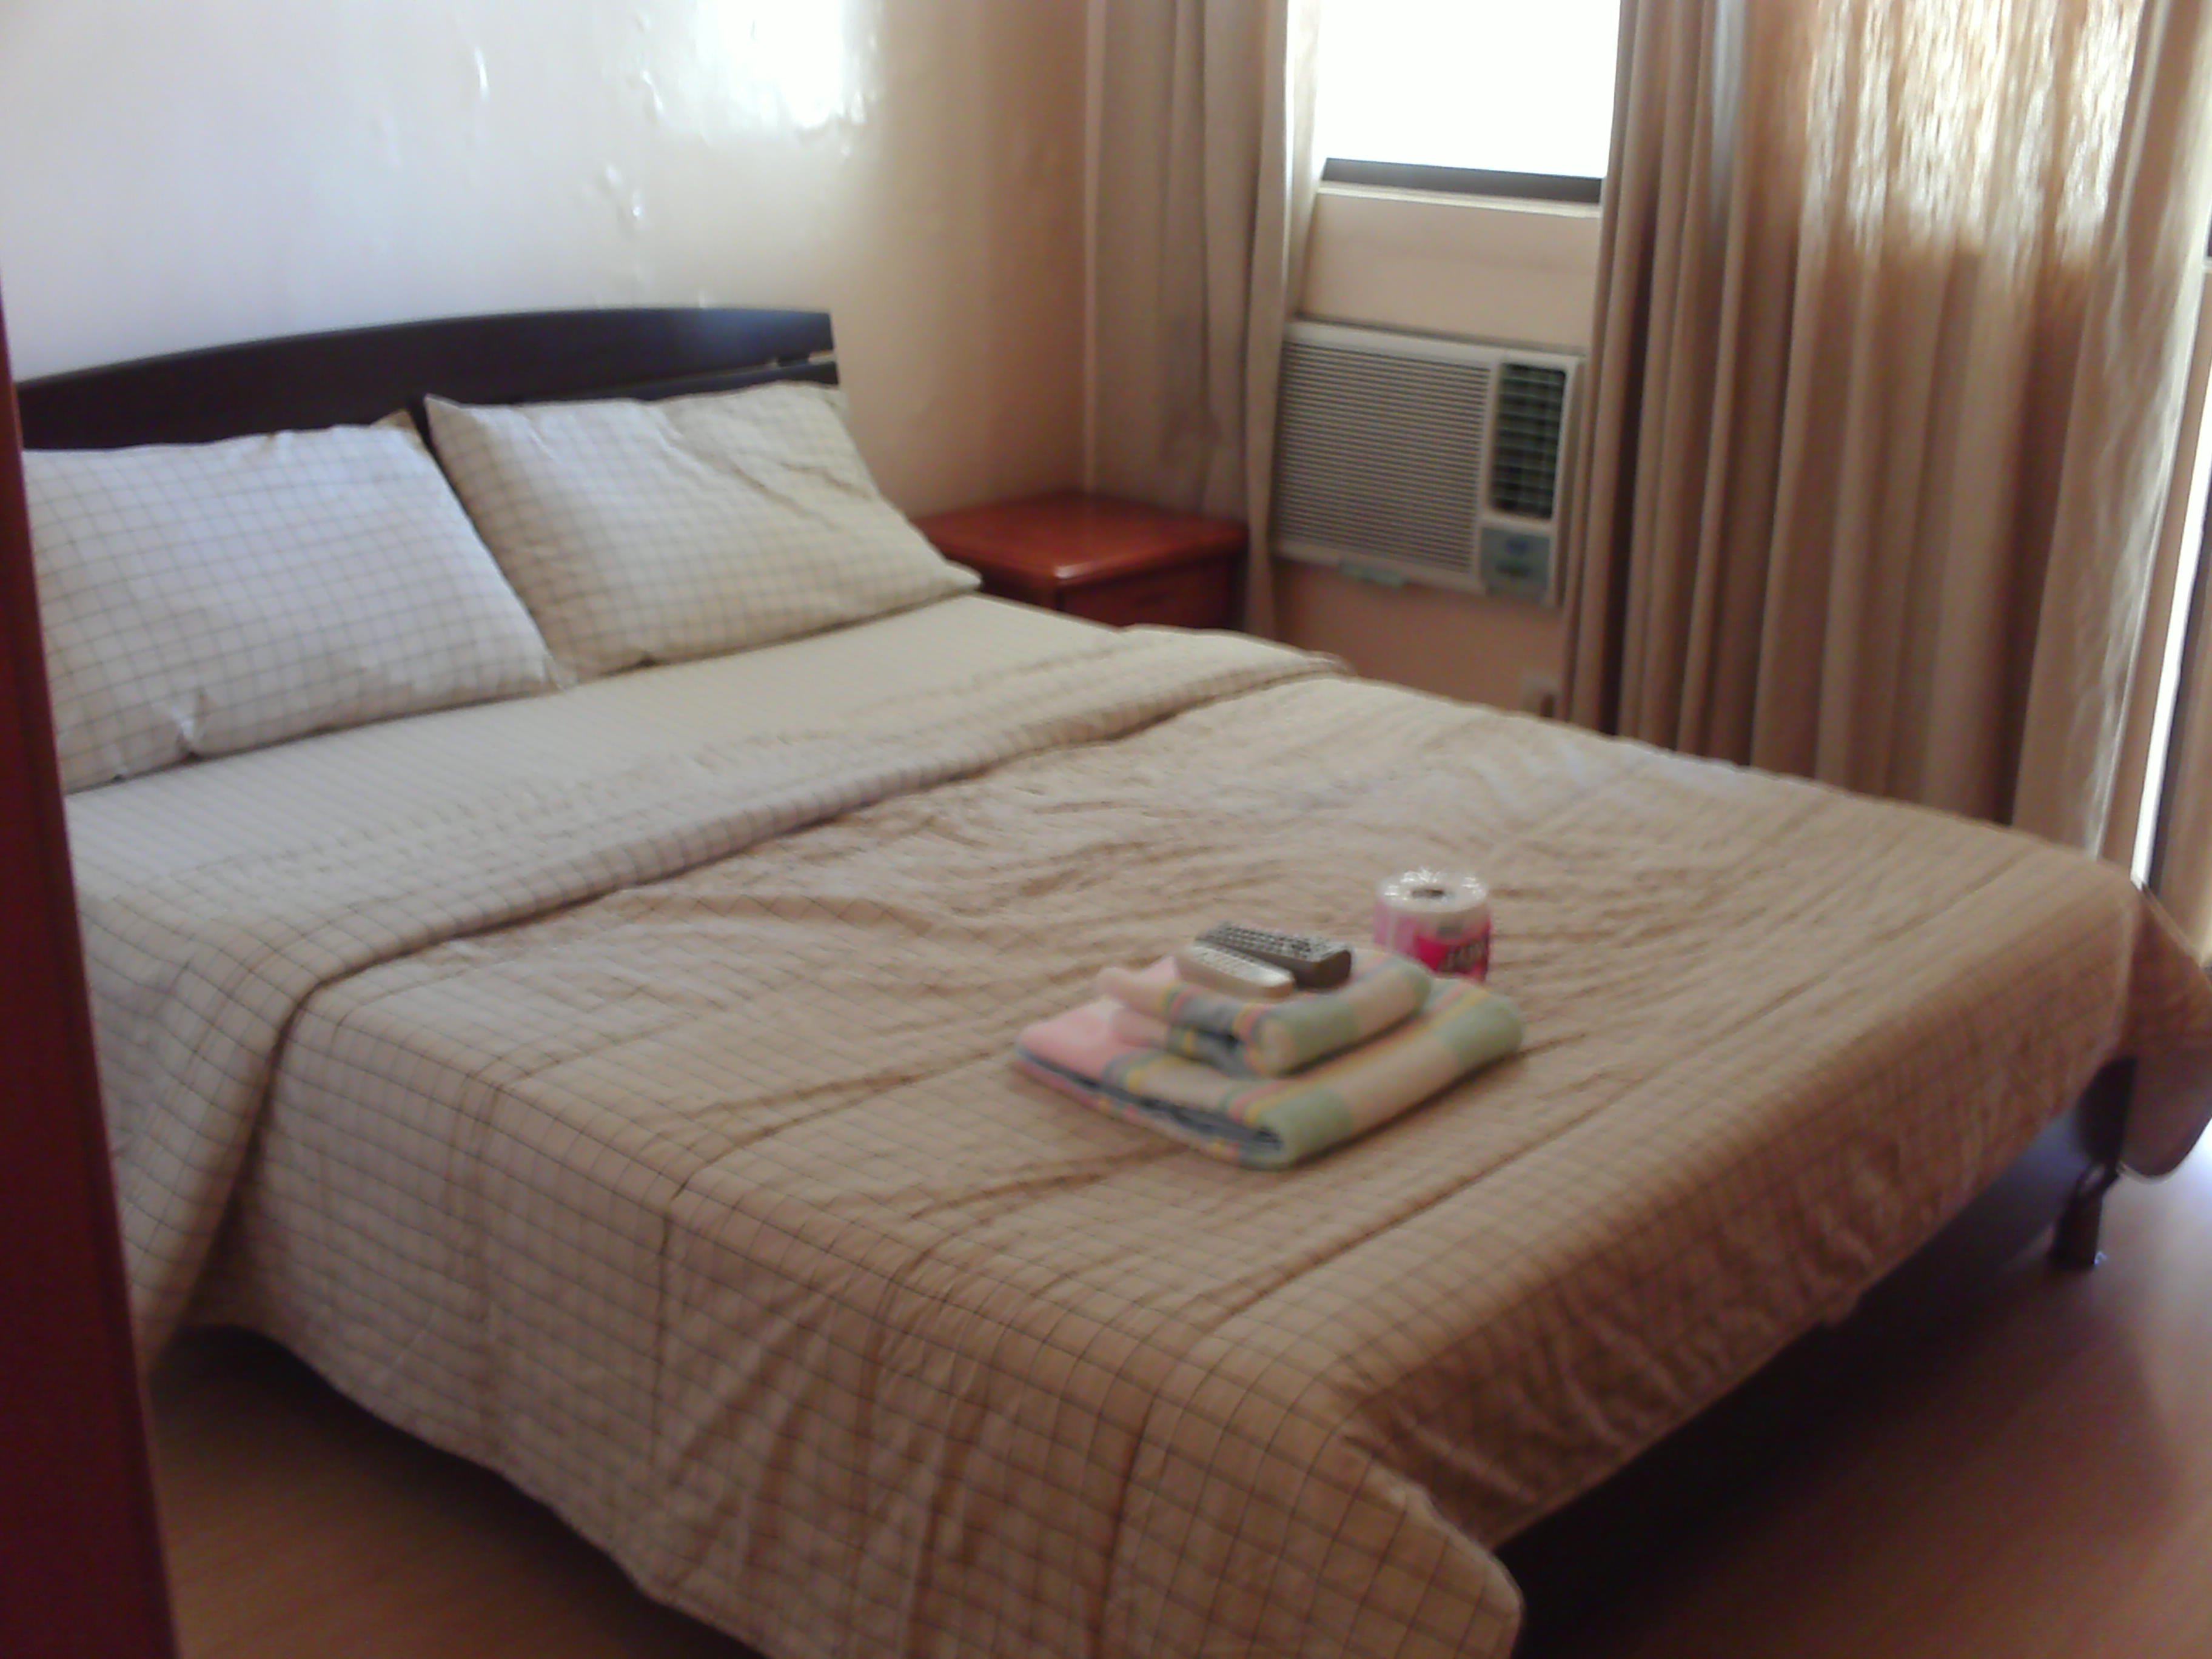 FOR RENT / LEASE: MAKATI 2,500/DAY, 18K UP/MONTH STUDIO/1BR GREENBELT AREA